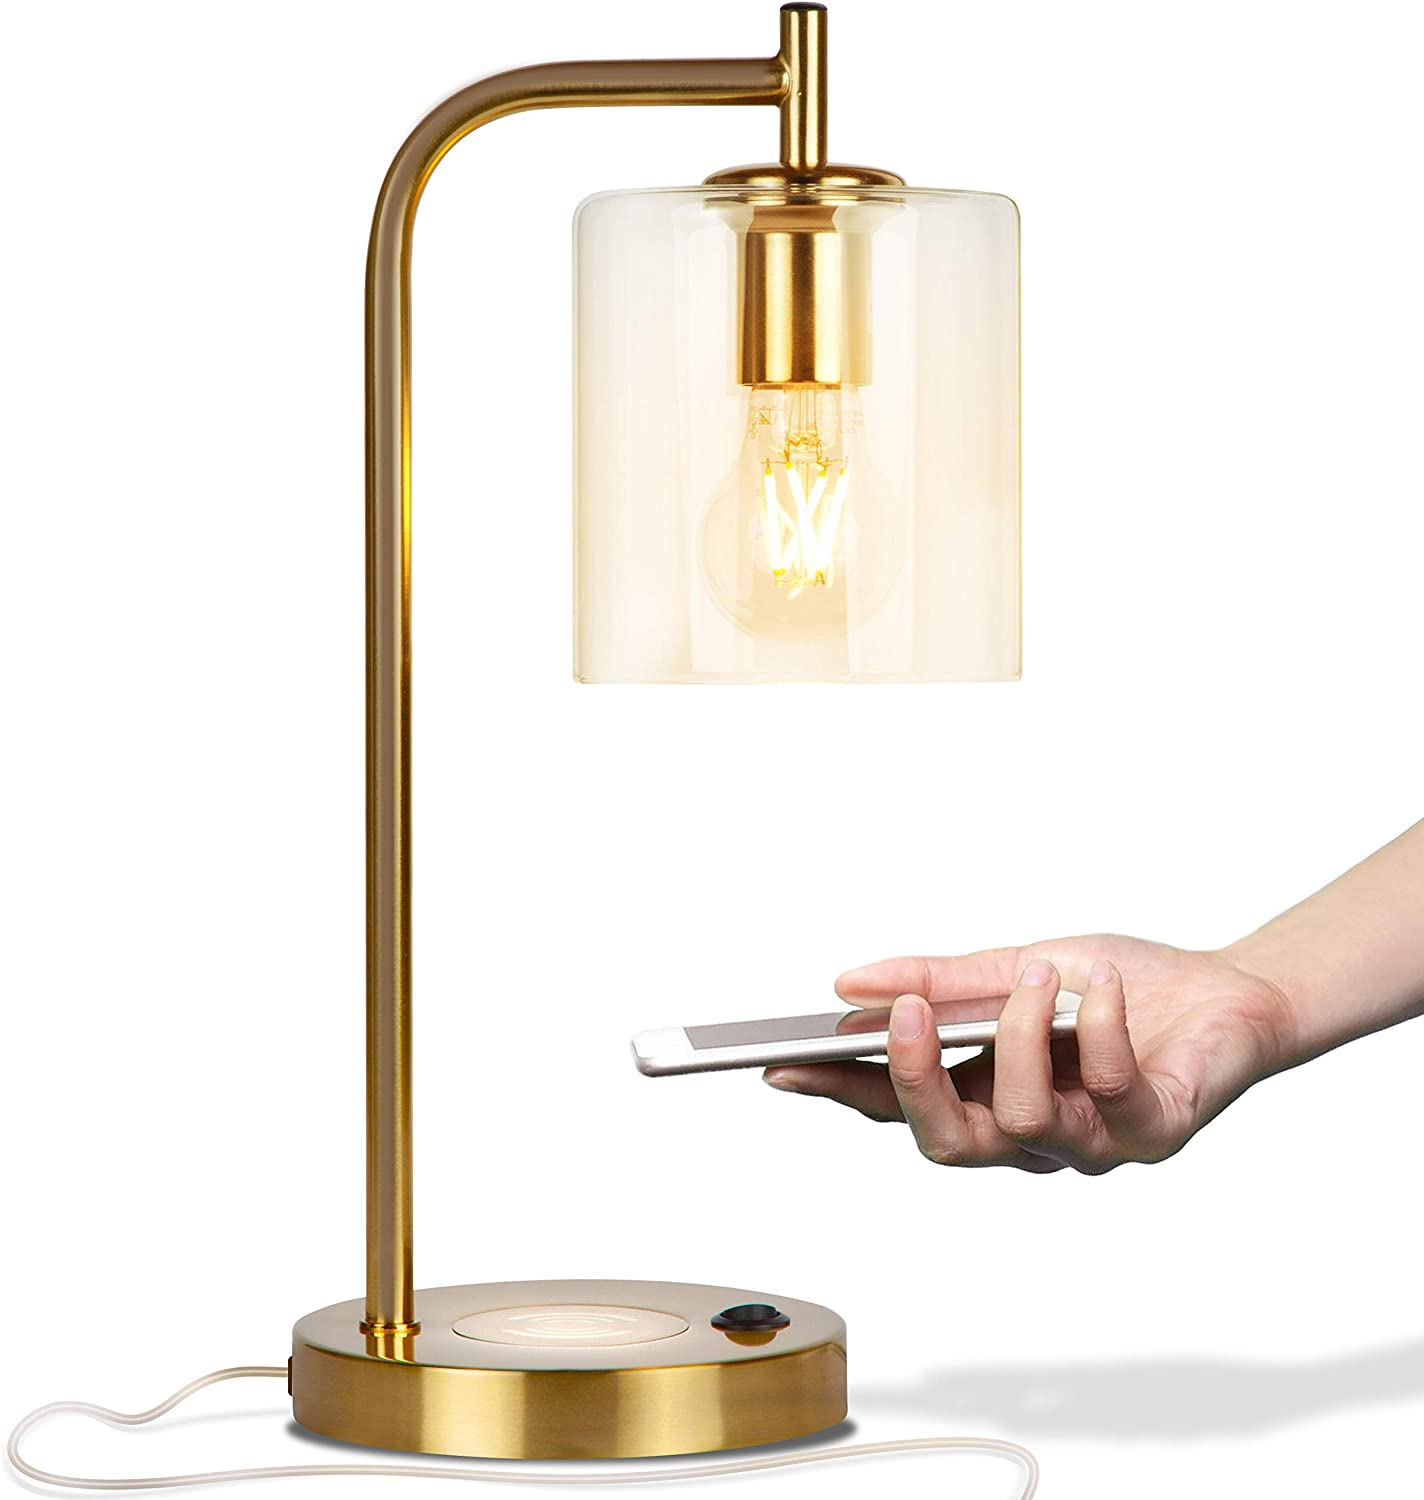 Brightech Elizabeth Office Desk Lamp - Wireless Charging Pad and USB Port – Living Room Table Light for Midcentury, Industrial & Farmhouse Decor - Hanging Glass Shade - LED Bulb - Brass Gold Color